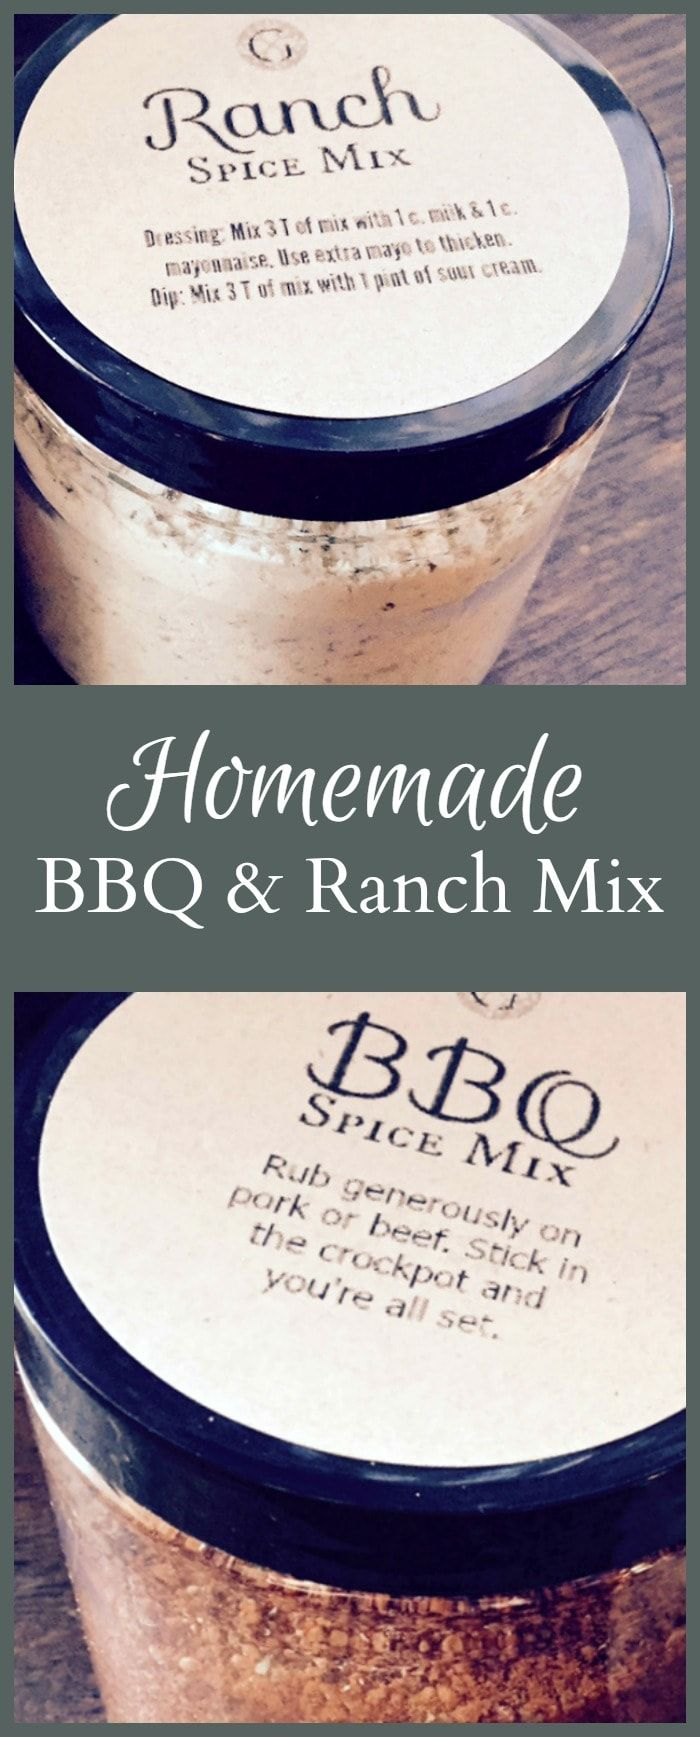 Here's a recipe for a great BBQ and Ranch spice mix to give out as a gift, including free printables for both mixes and a gift tag. #DIYgift #Ranchdressing #BBQ